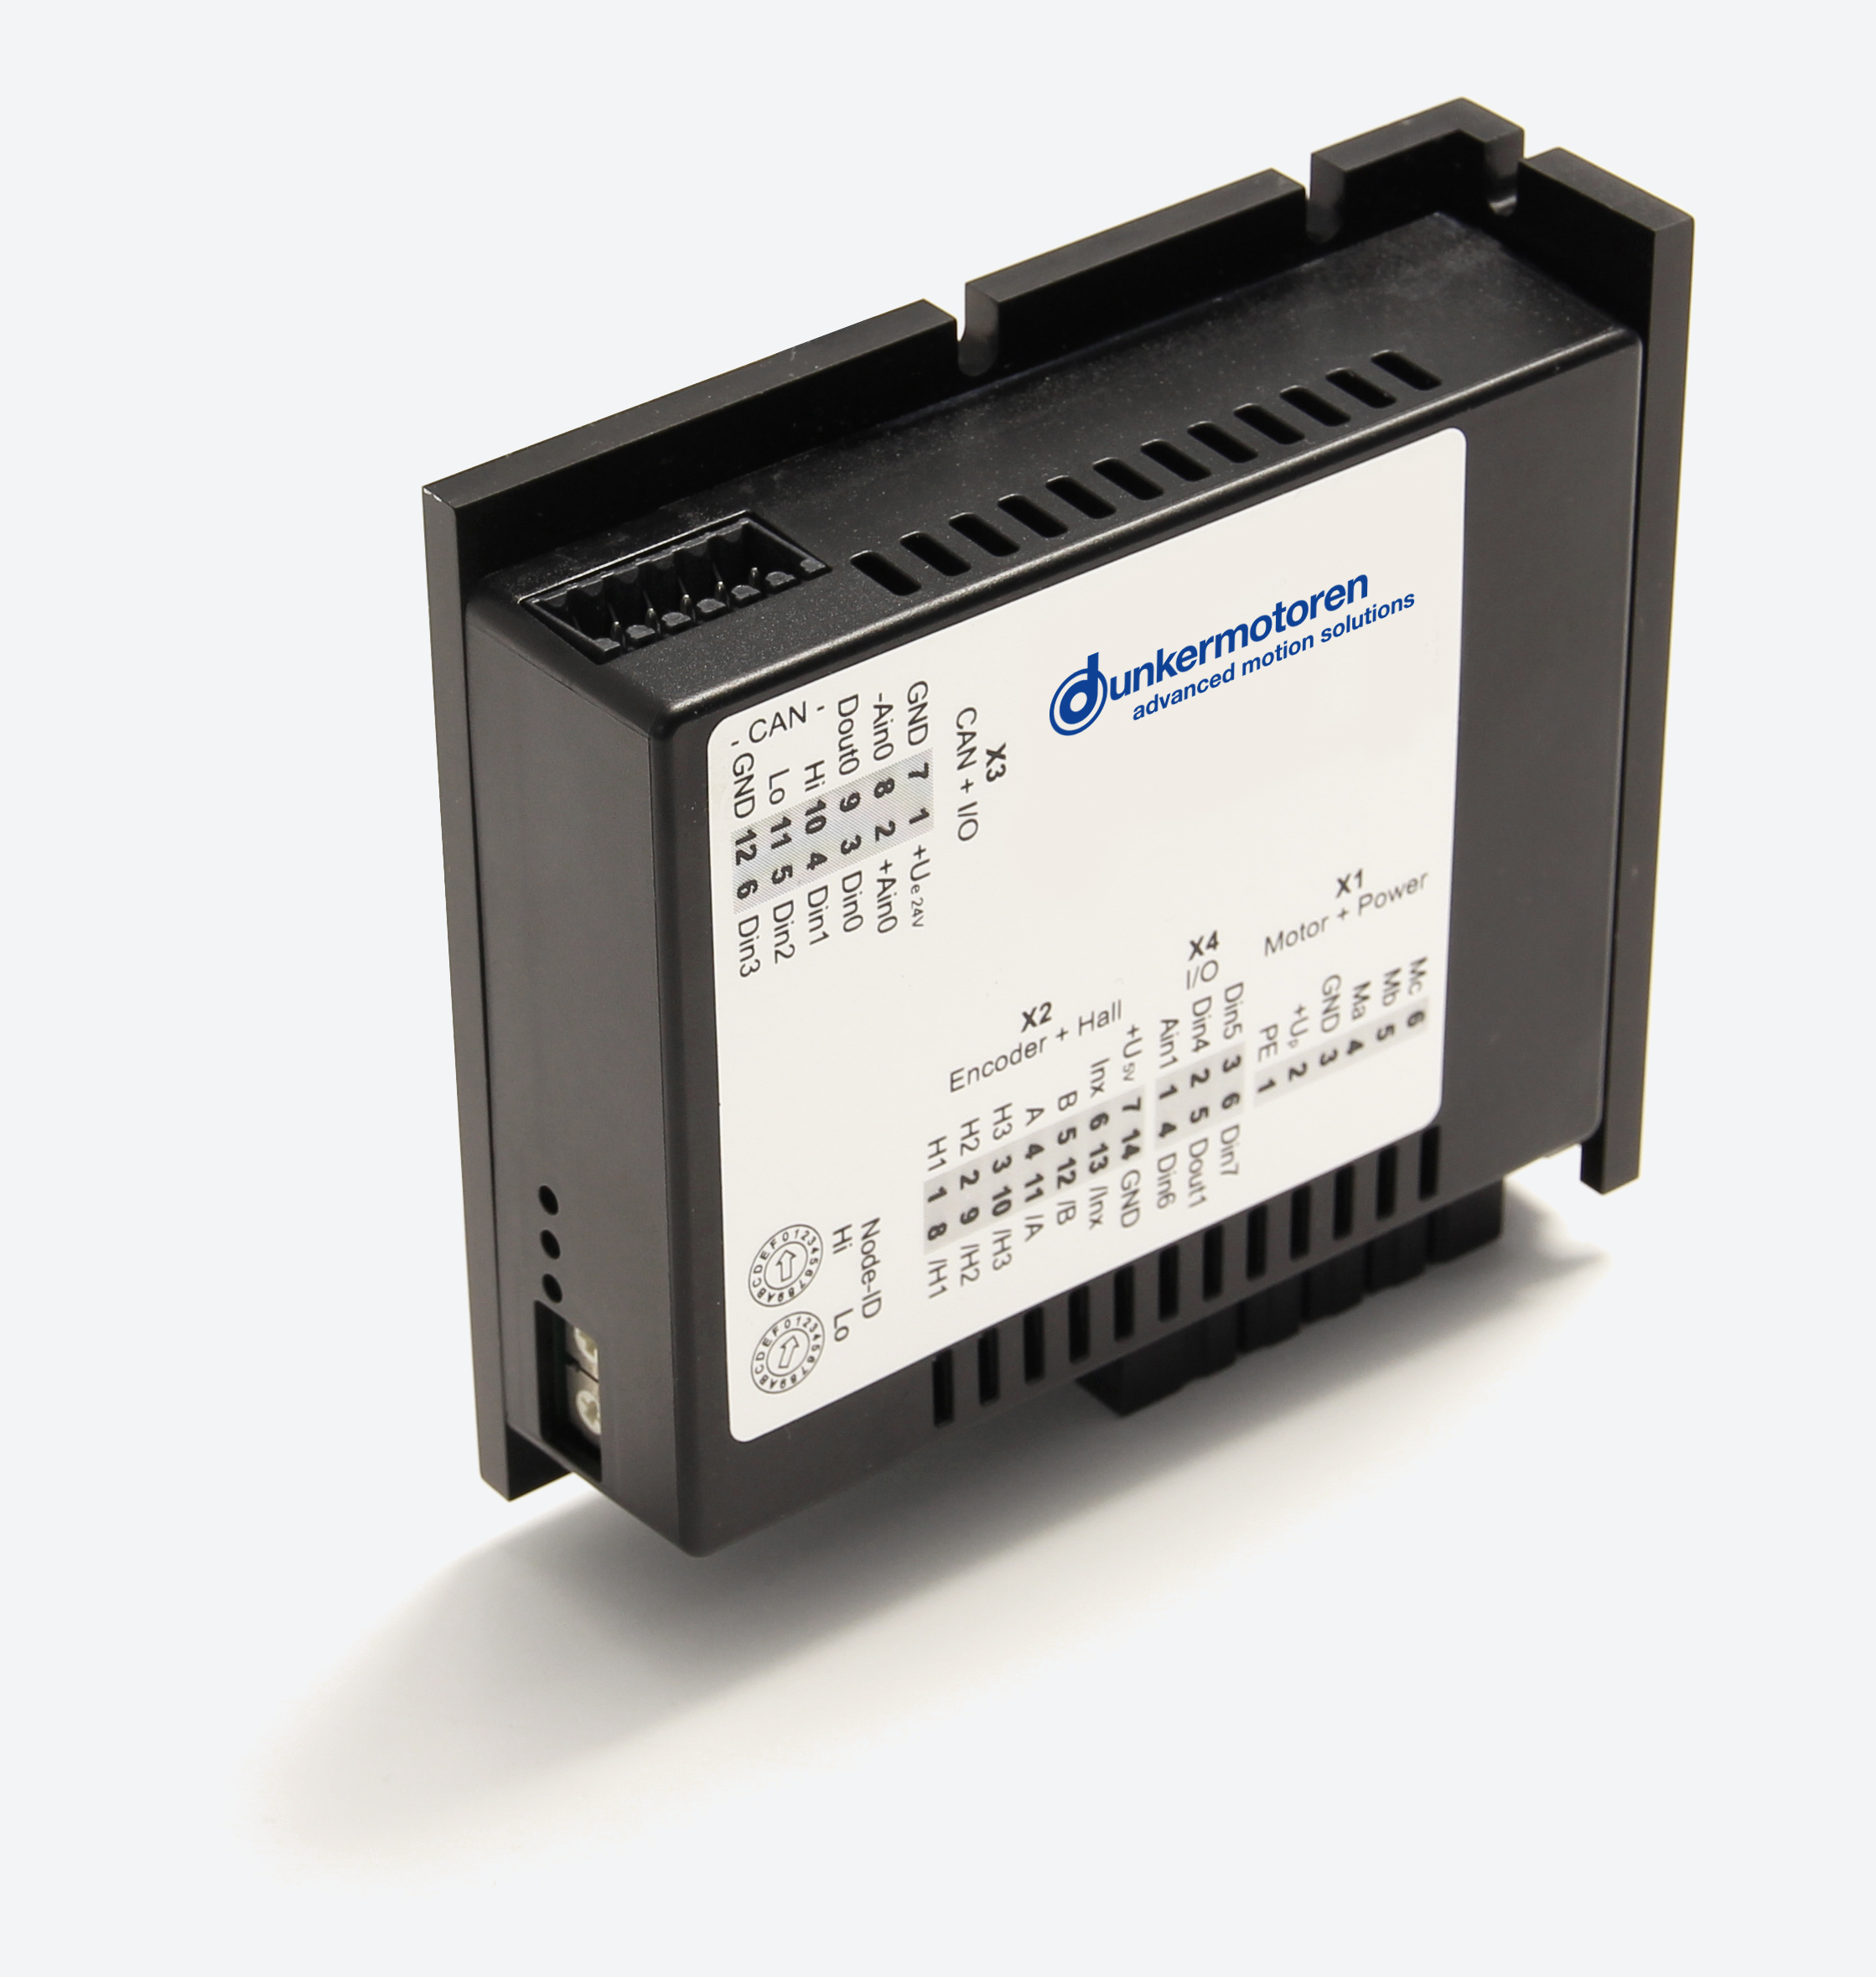 Ametek Ams Brushless Dc Motor Controller With Rpm Display Electrical Projects In Addition To Motors And Gearboxes Dunkermotoren Also Offers Controllers Gateways The Product Range Includes Electronics For Speed Control